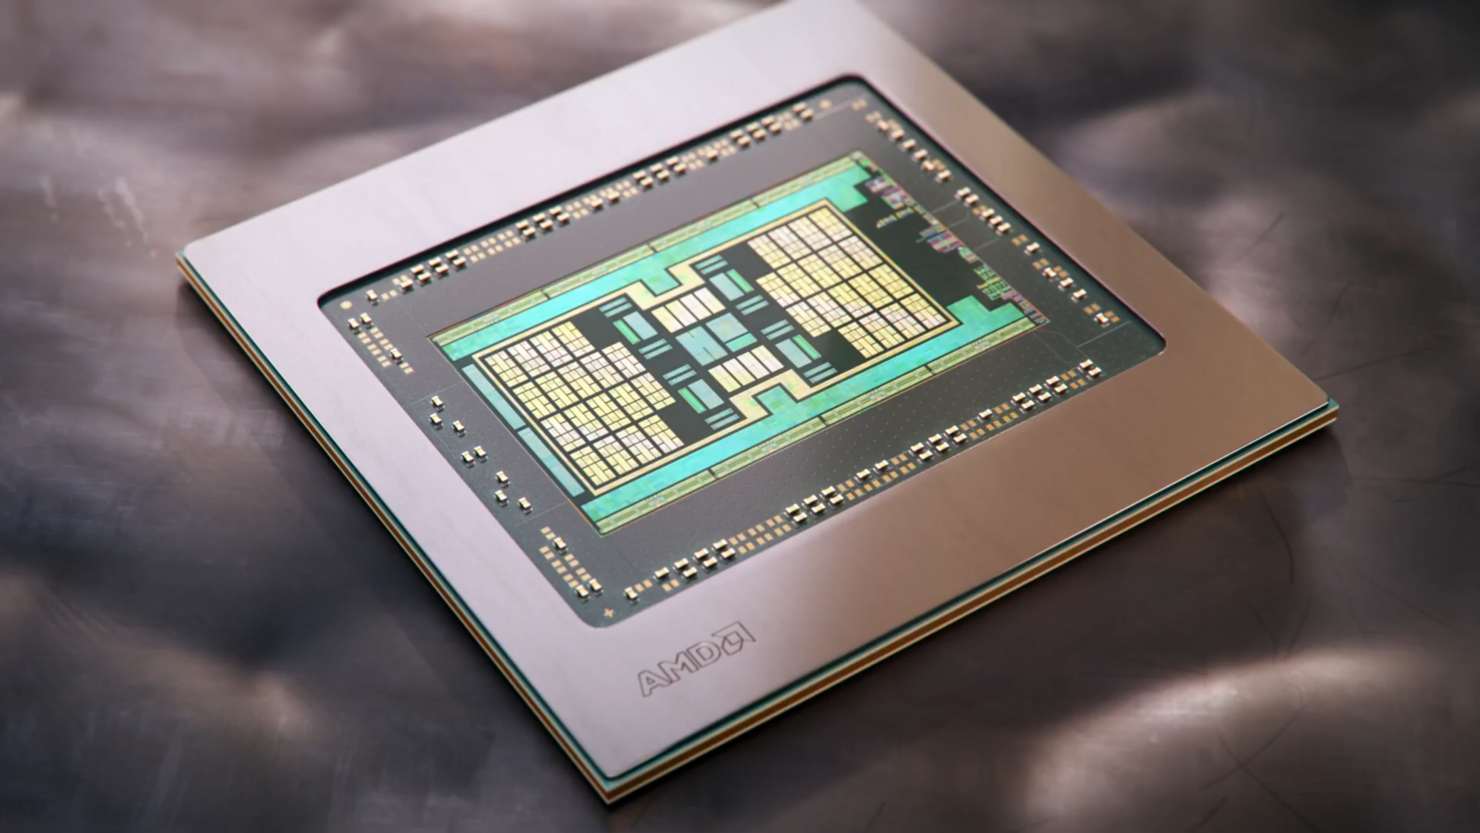 amd-rdna-2-gpus-have-much-better-memory-latency-versus-nvidia's-ampere-gpu-architecture